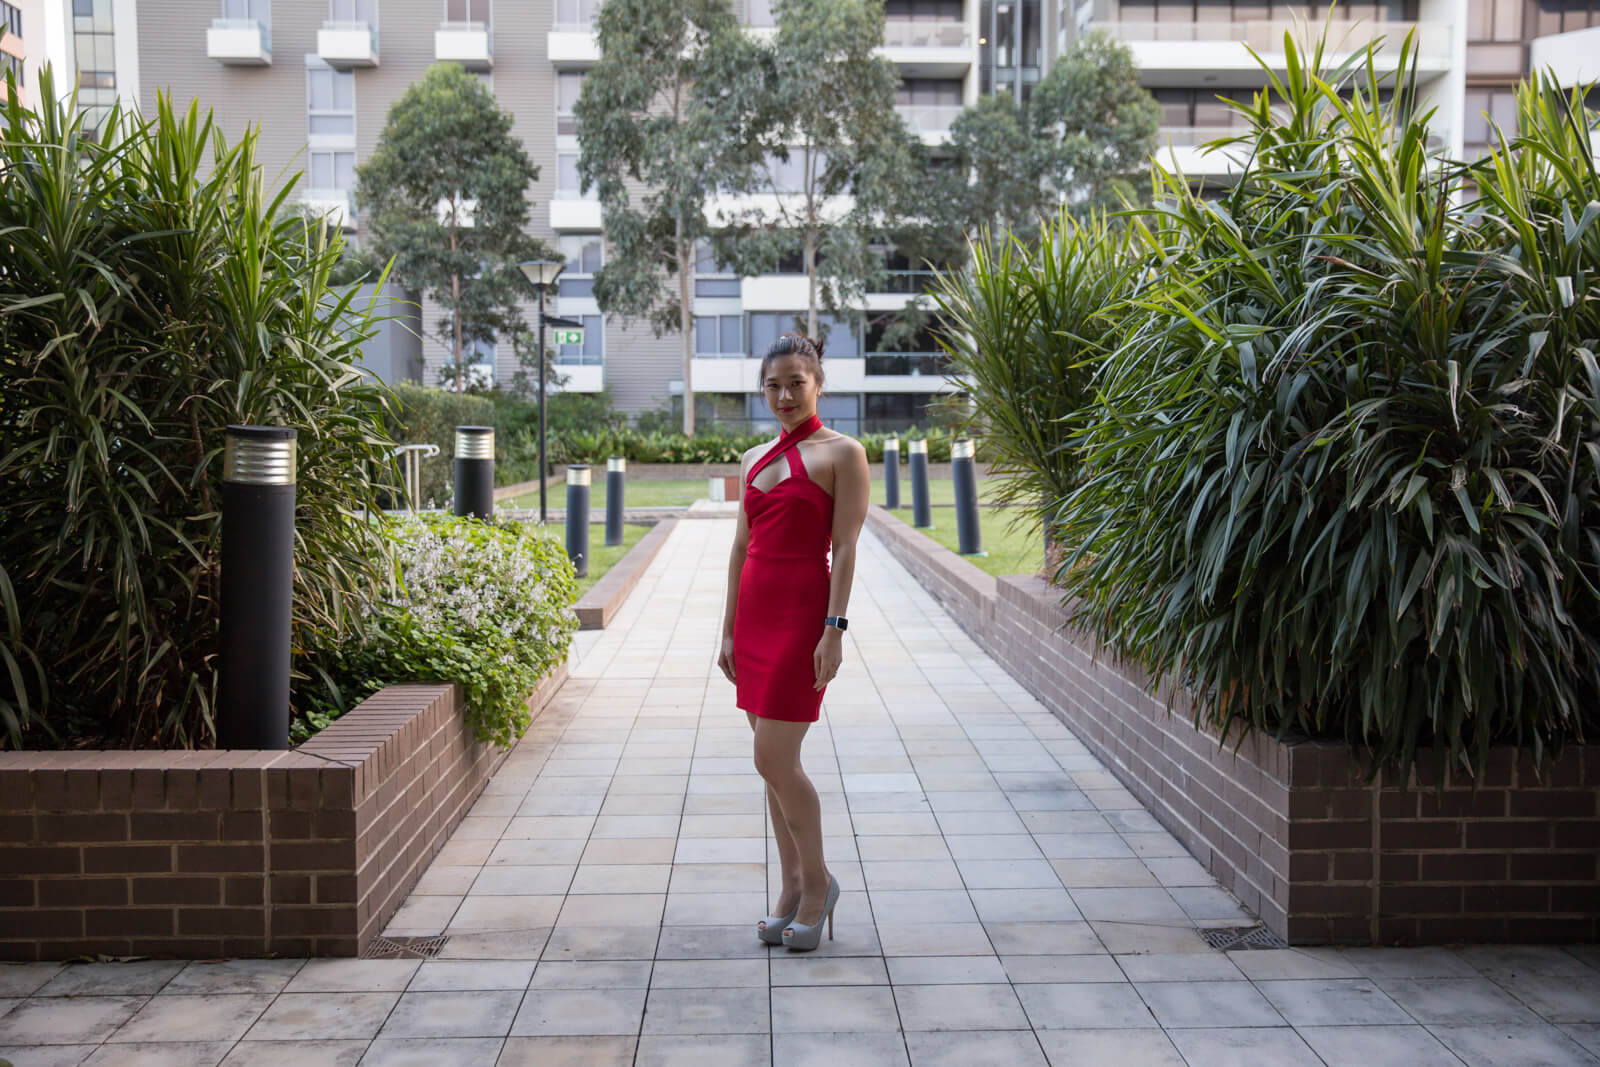 A woman wearing a red dress which has a cross-over front strap above the bust, her dark hair worn in a bun. She is wearing silver high heels and standing on a path with short brick walls and plants and grass outside of the walls.